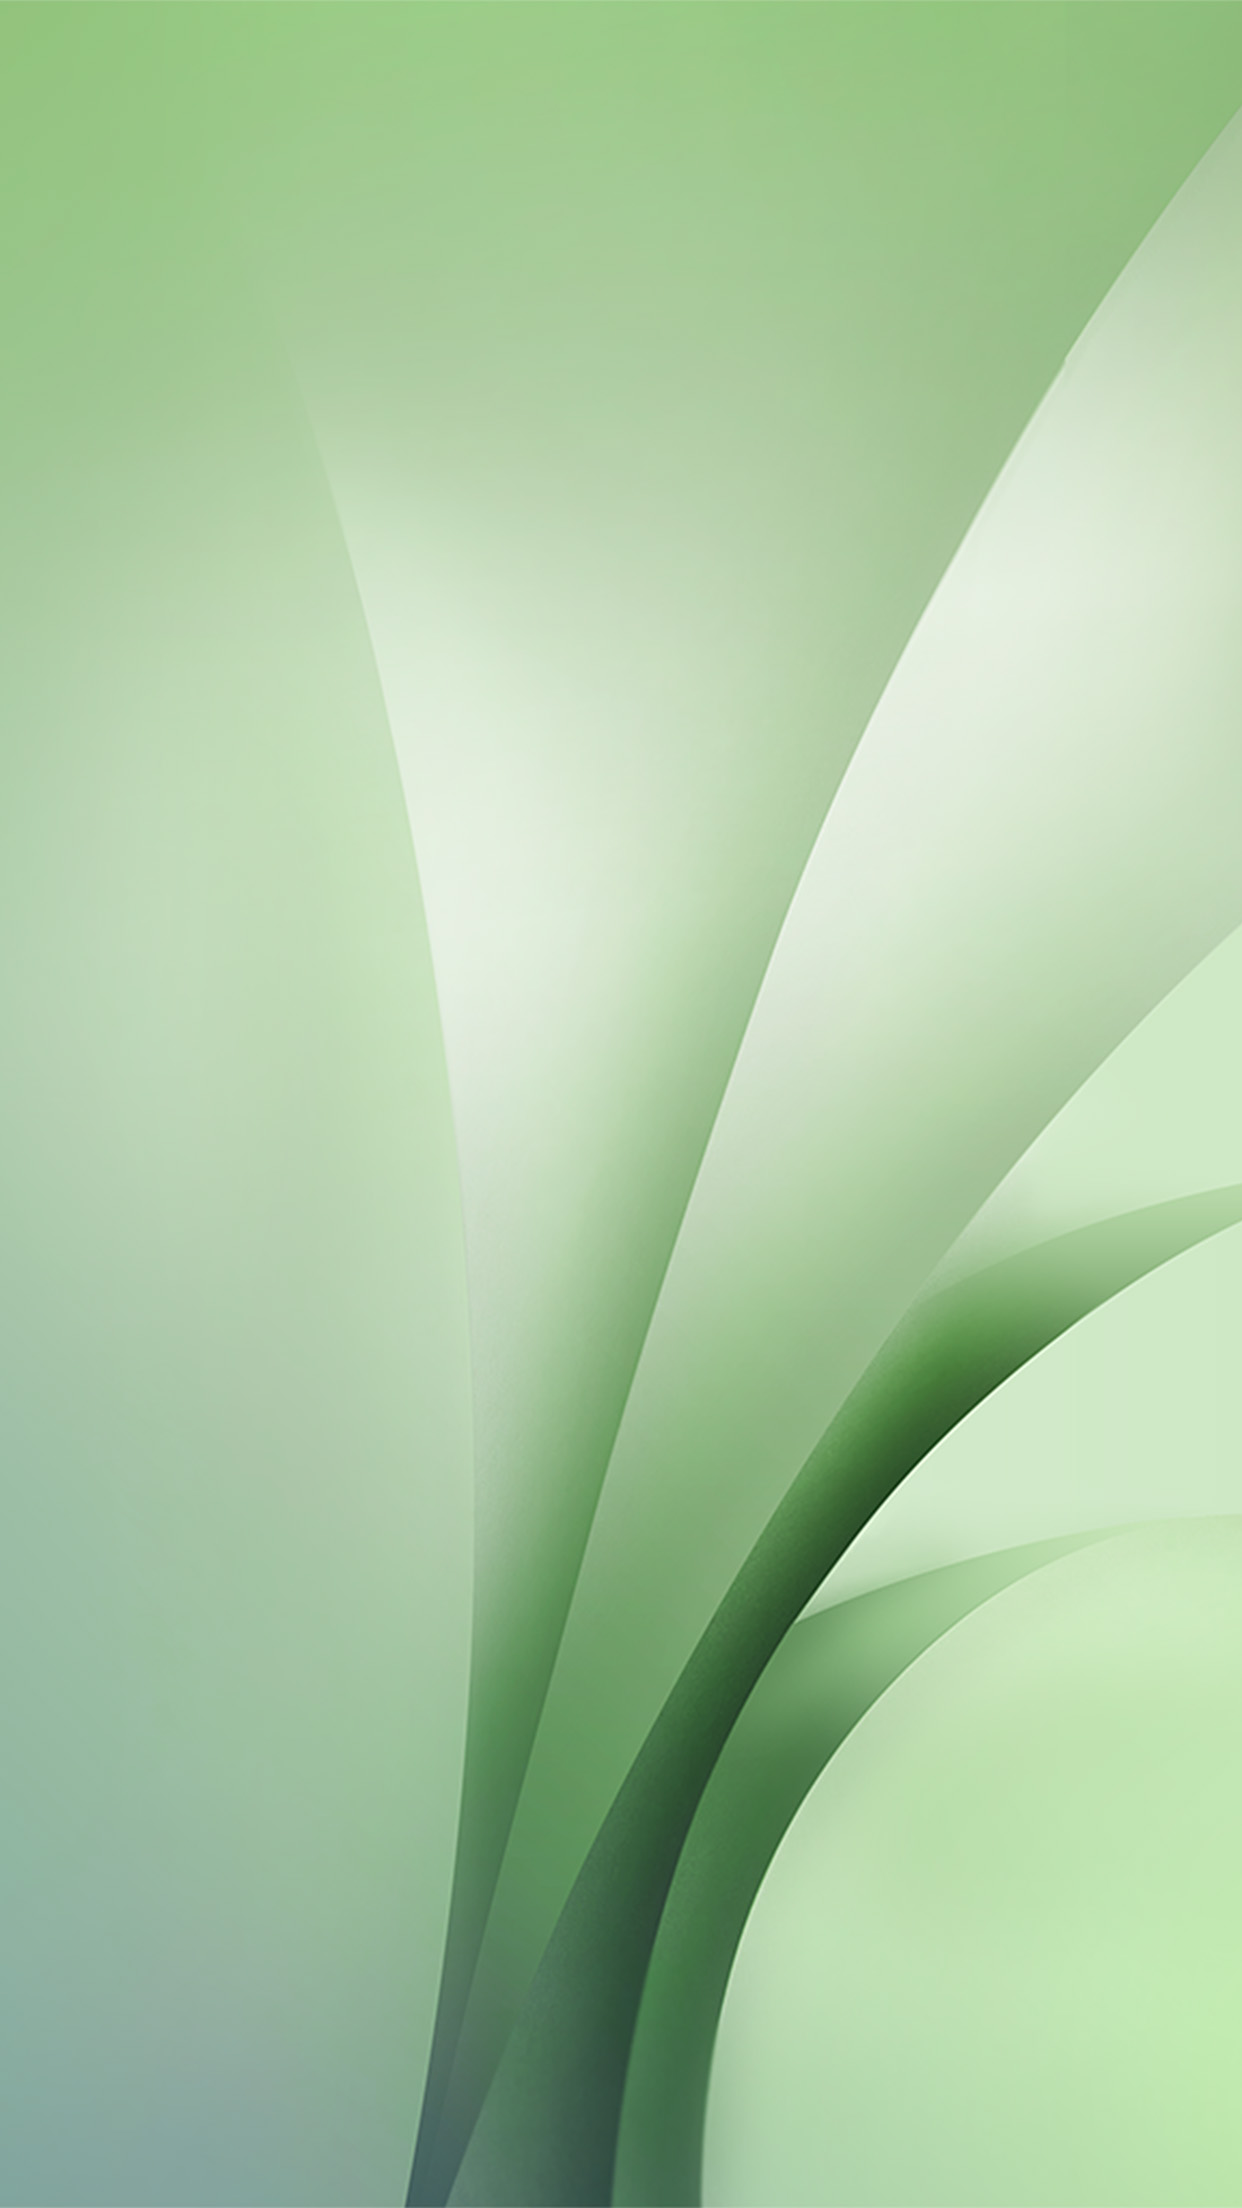 Samsung Galaxy Abstract Green Pattern Android wallpaper - Android